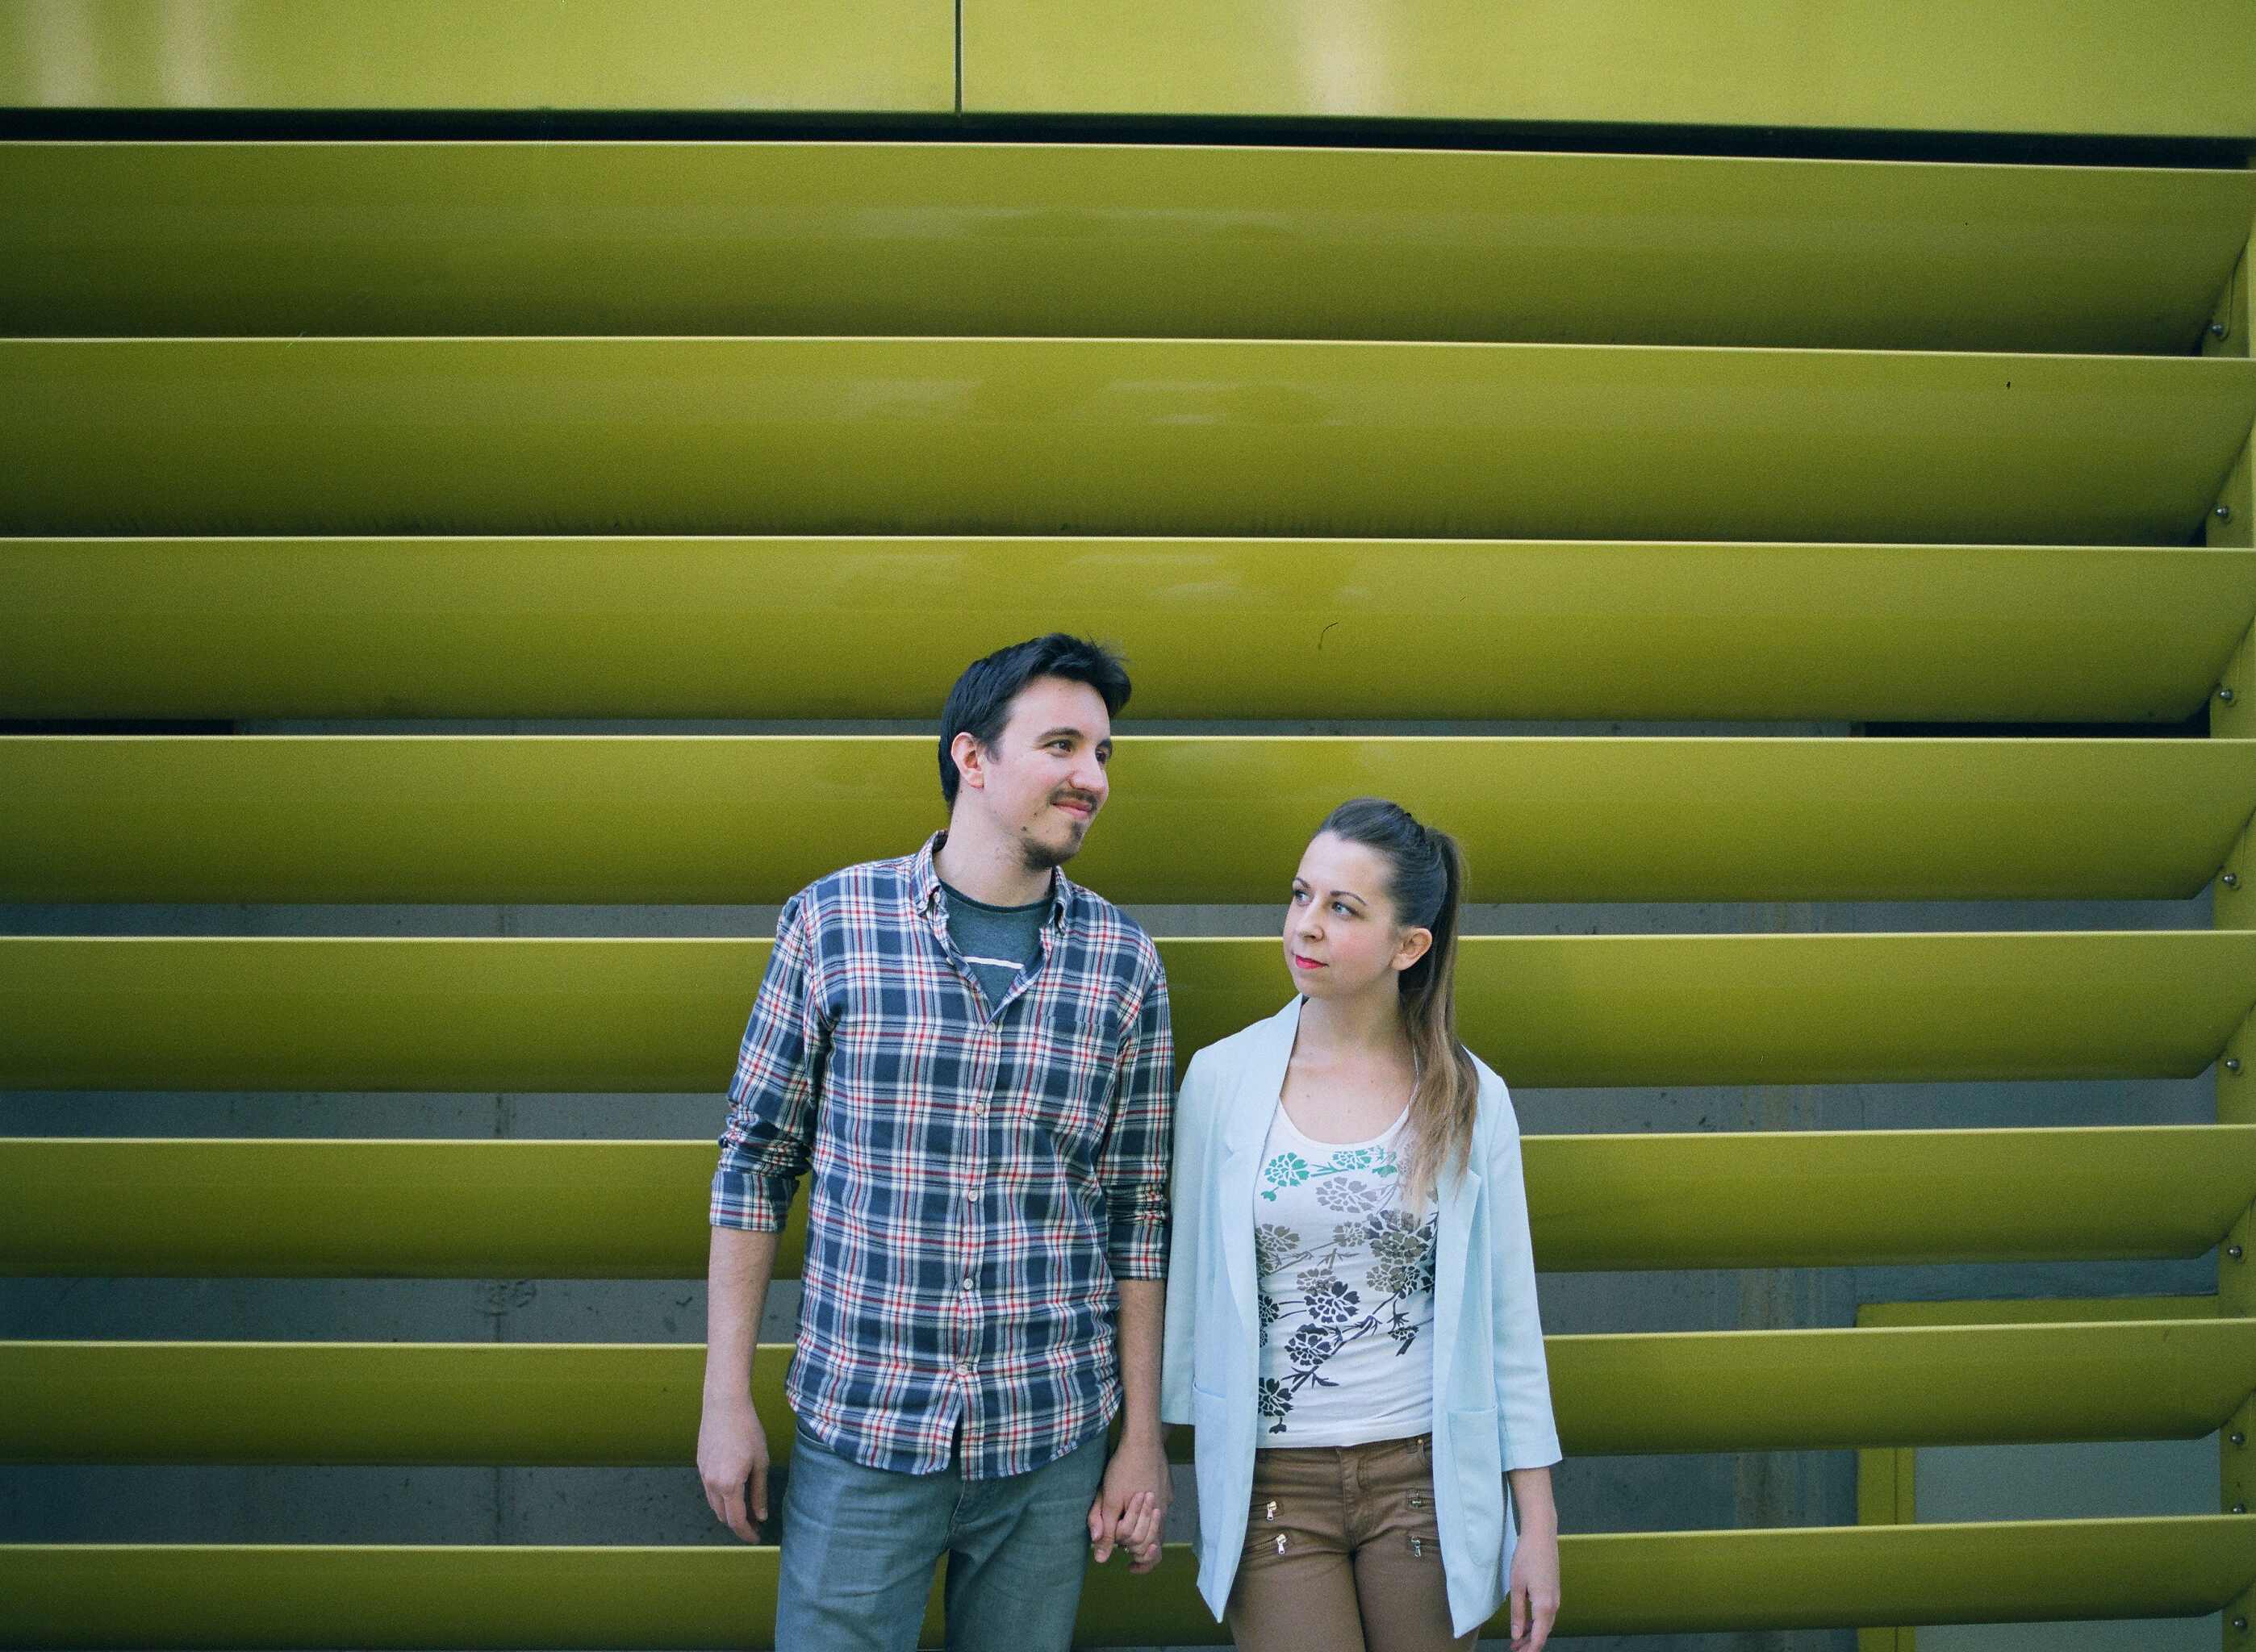 couple chilling in front of yellow fence. shot on medium format film, mamiya 645 pro tl, sekor 45mm f2.8